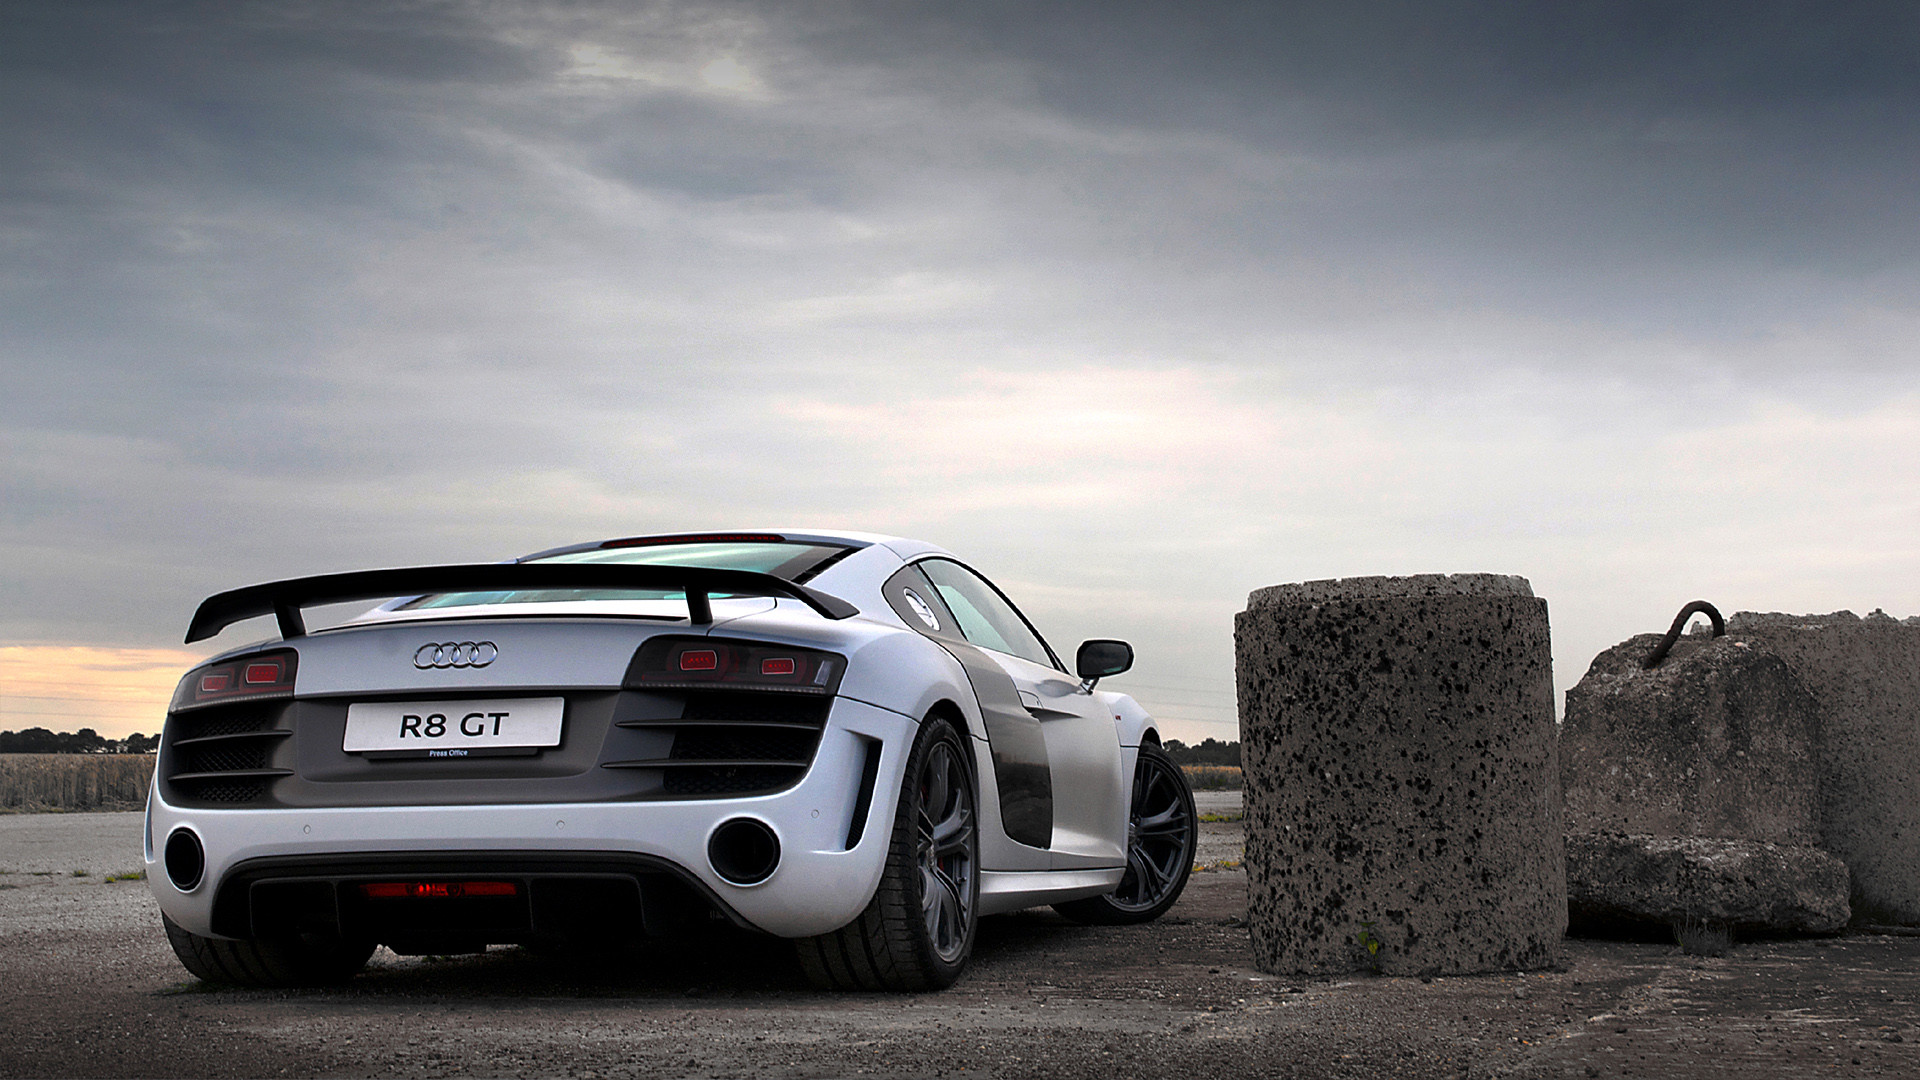 … Collection of Audi R8 Wallpaper on Spyder Wallpapers